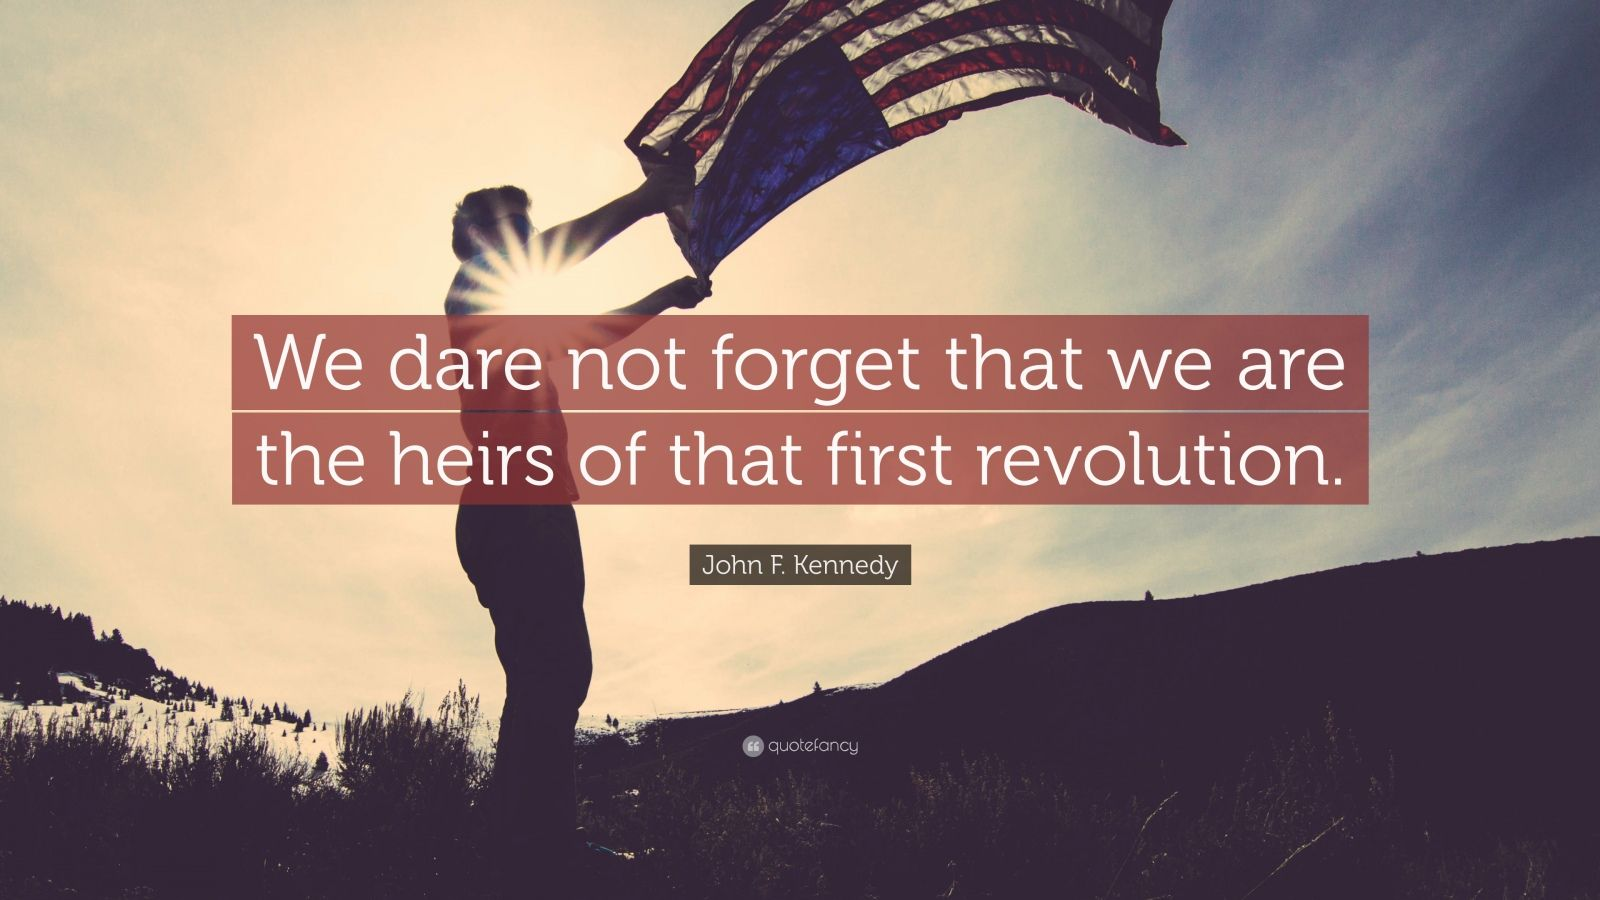 """John F. Kennedy Quote: """"We dare not forget that we are the heirs of that first revolution."""""""